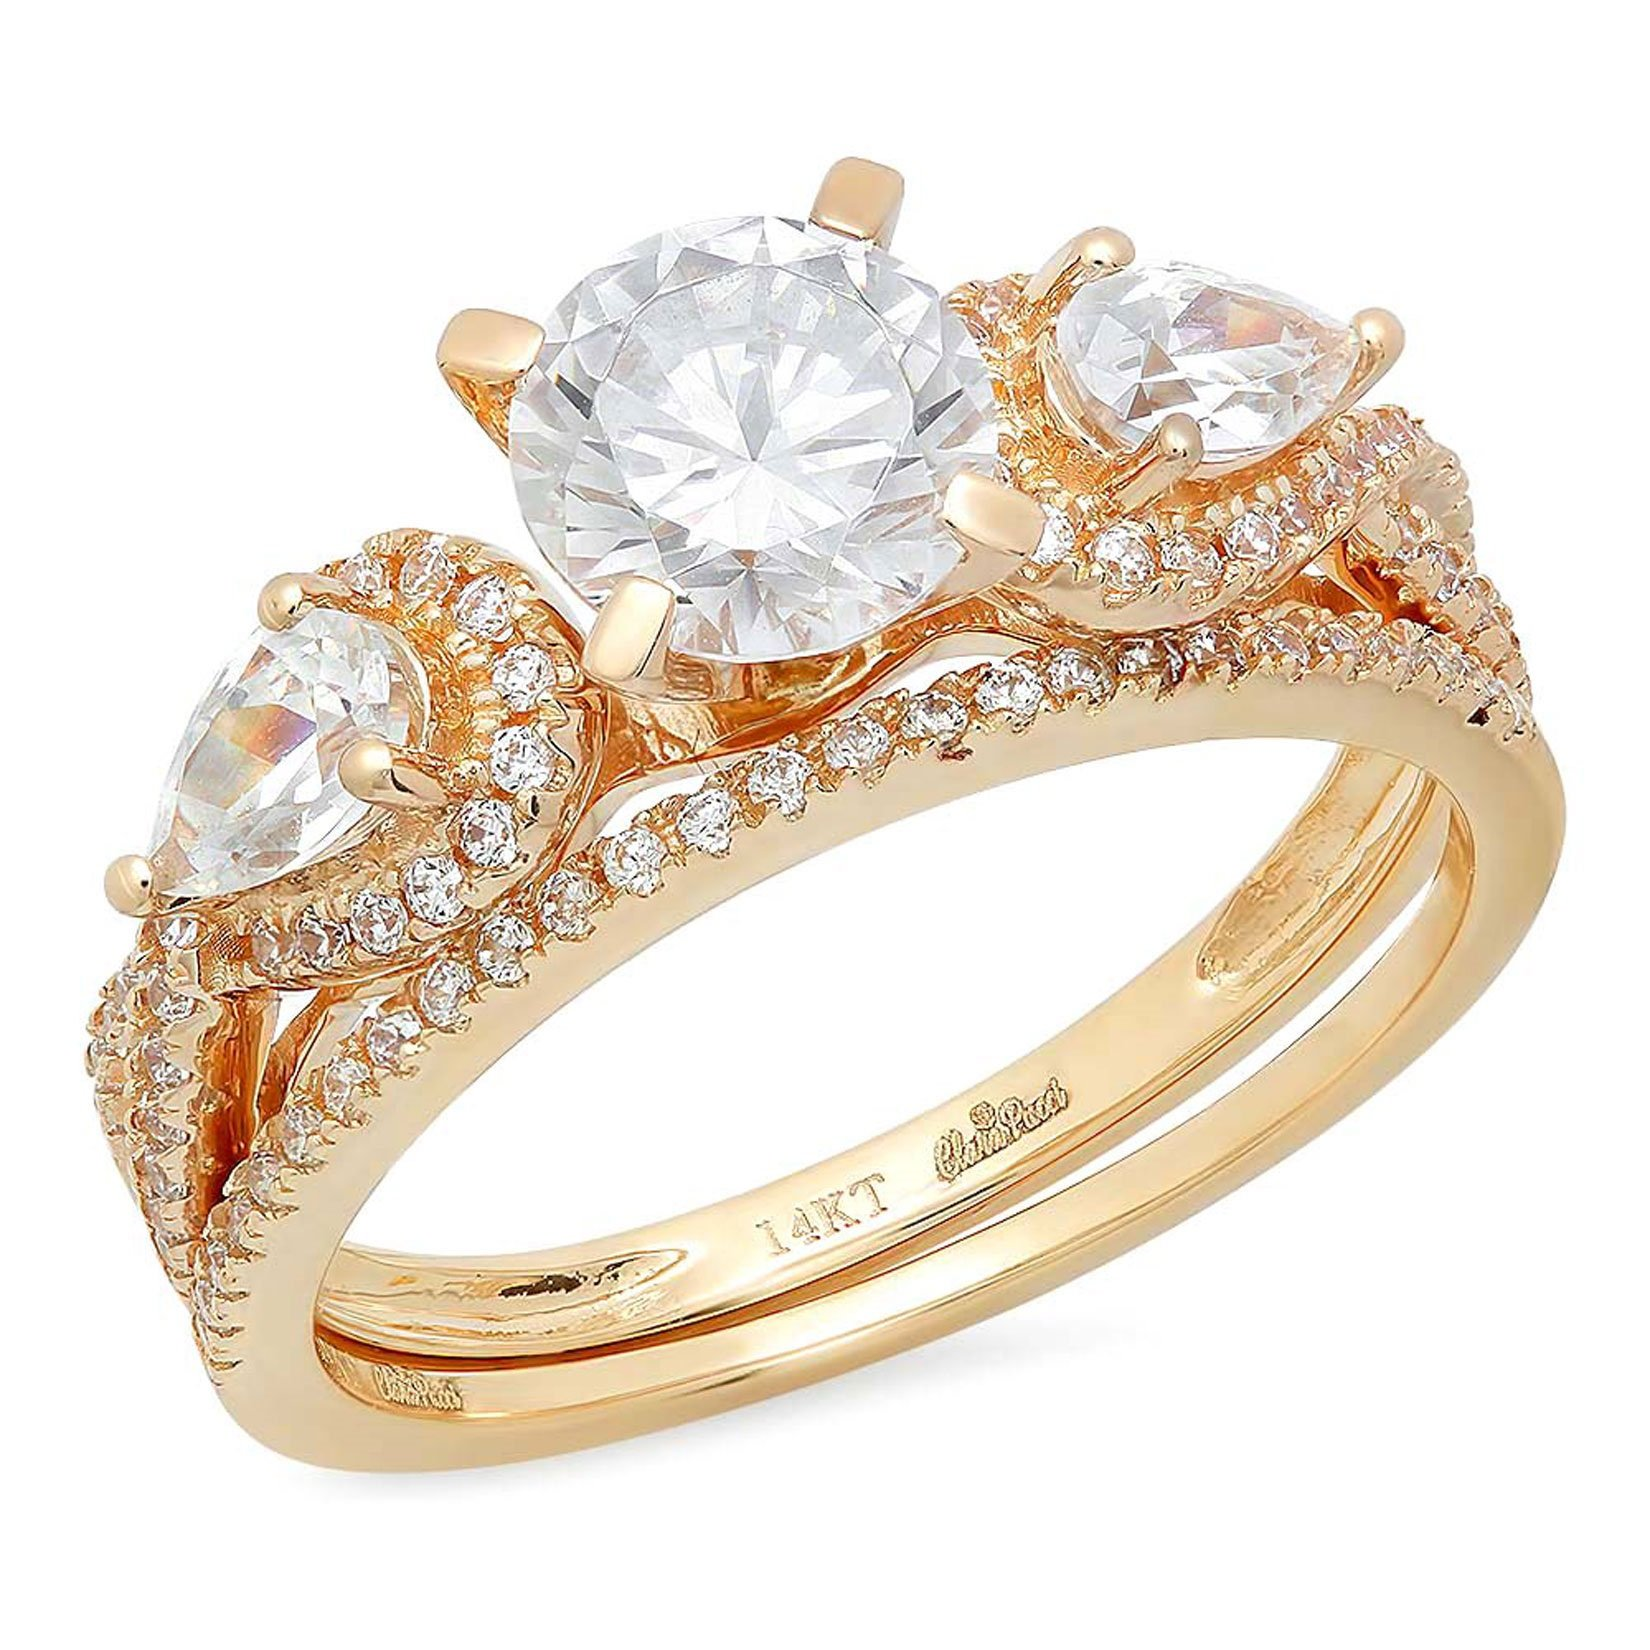 Clara Pucci 1.9 CT Round and Pear Cut Pave Halo Bridal Engagement Wedding Ring Band Set 14k Yellow Gold, Size 5